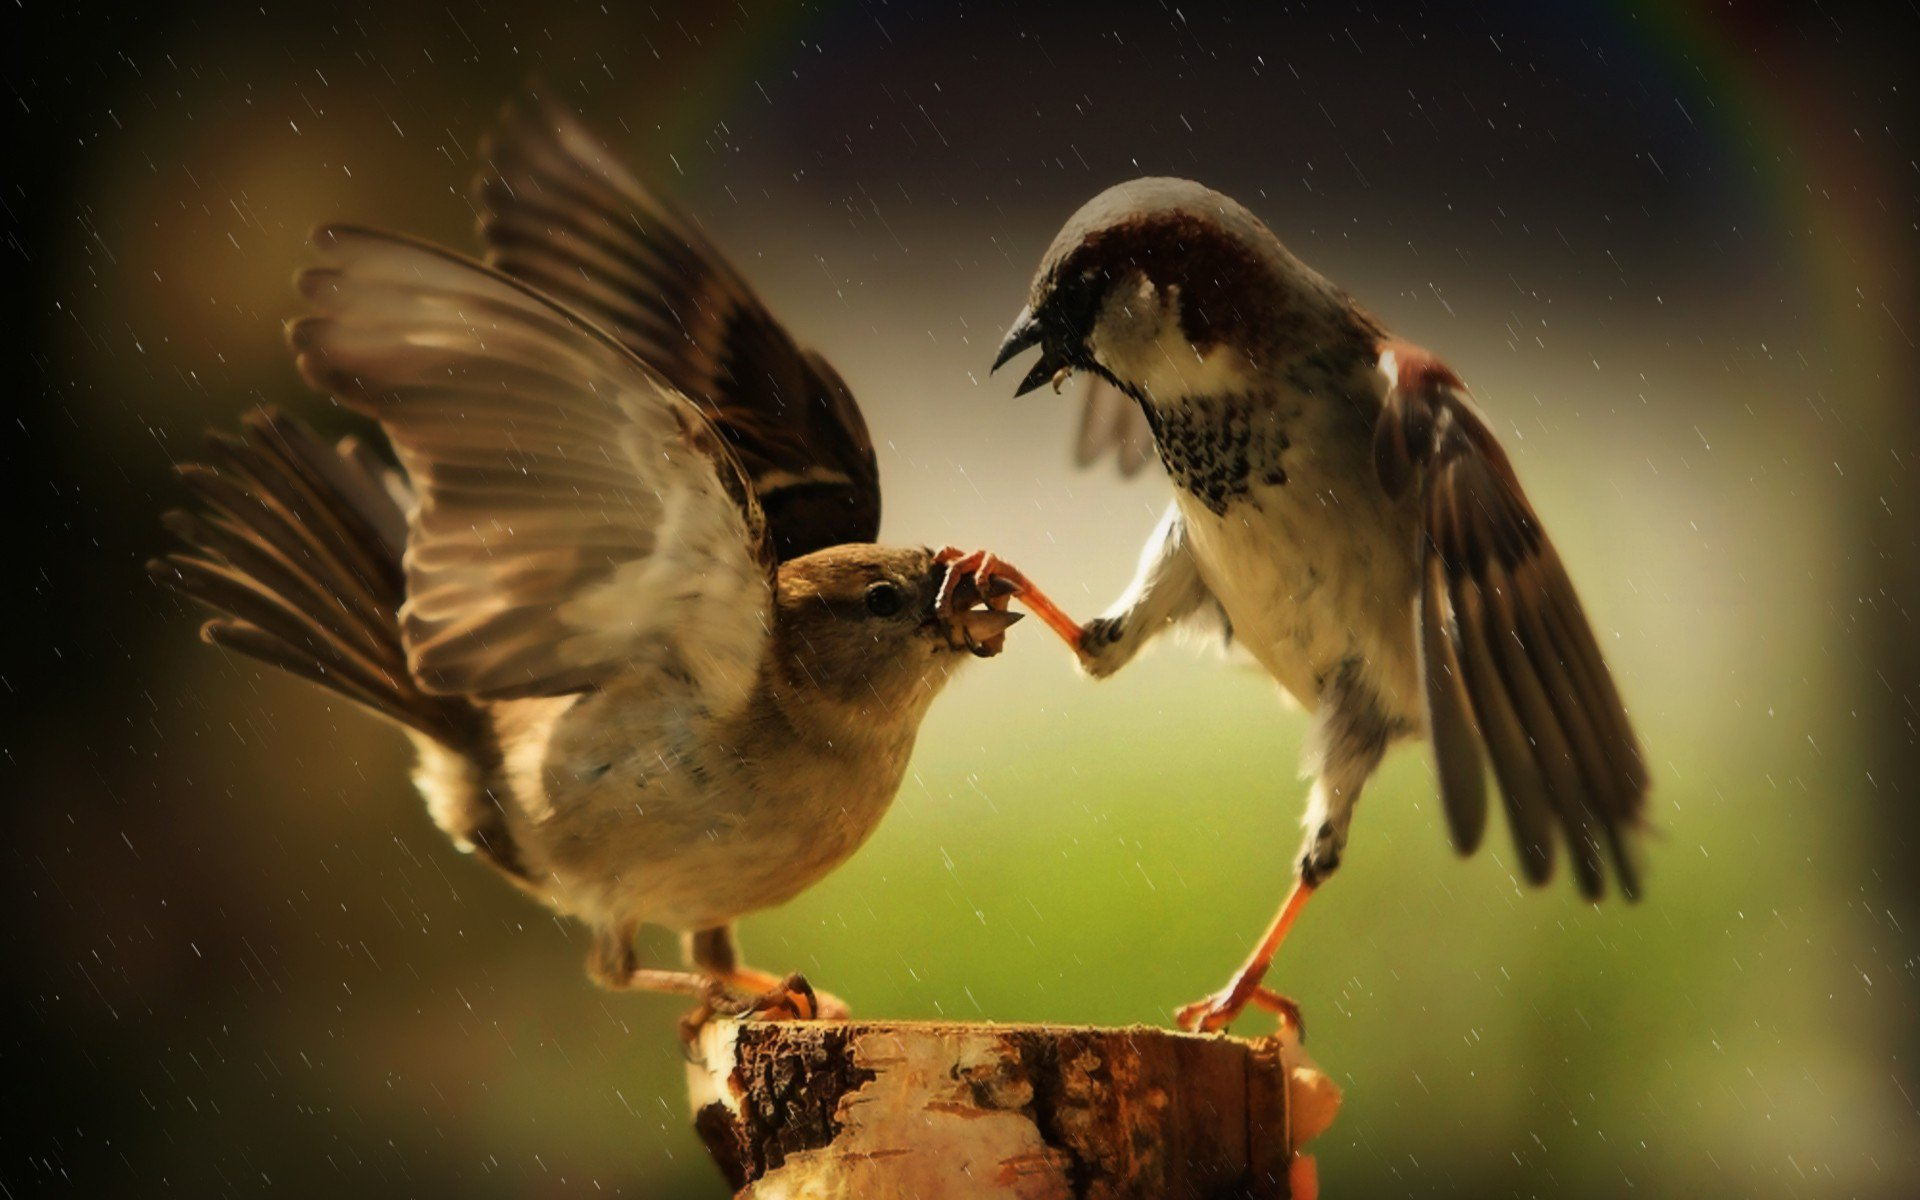 Funny Wallpapers For Laptop 60 Images: Passerines, HD Birds, 4k Wallpapers, Images, Backgrounds